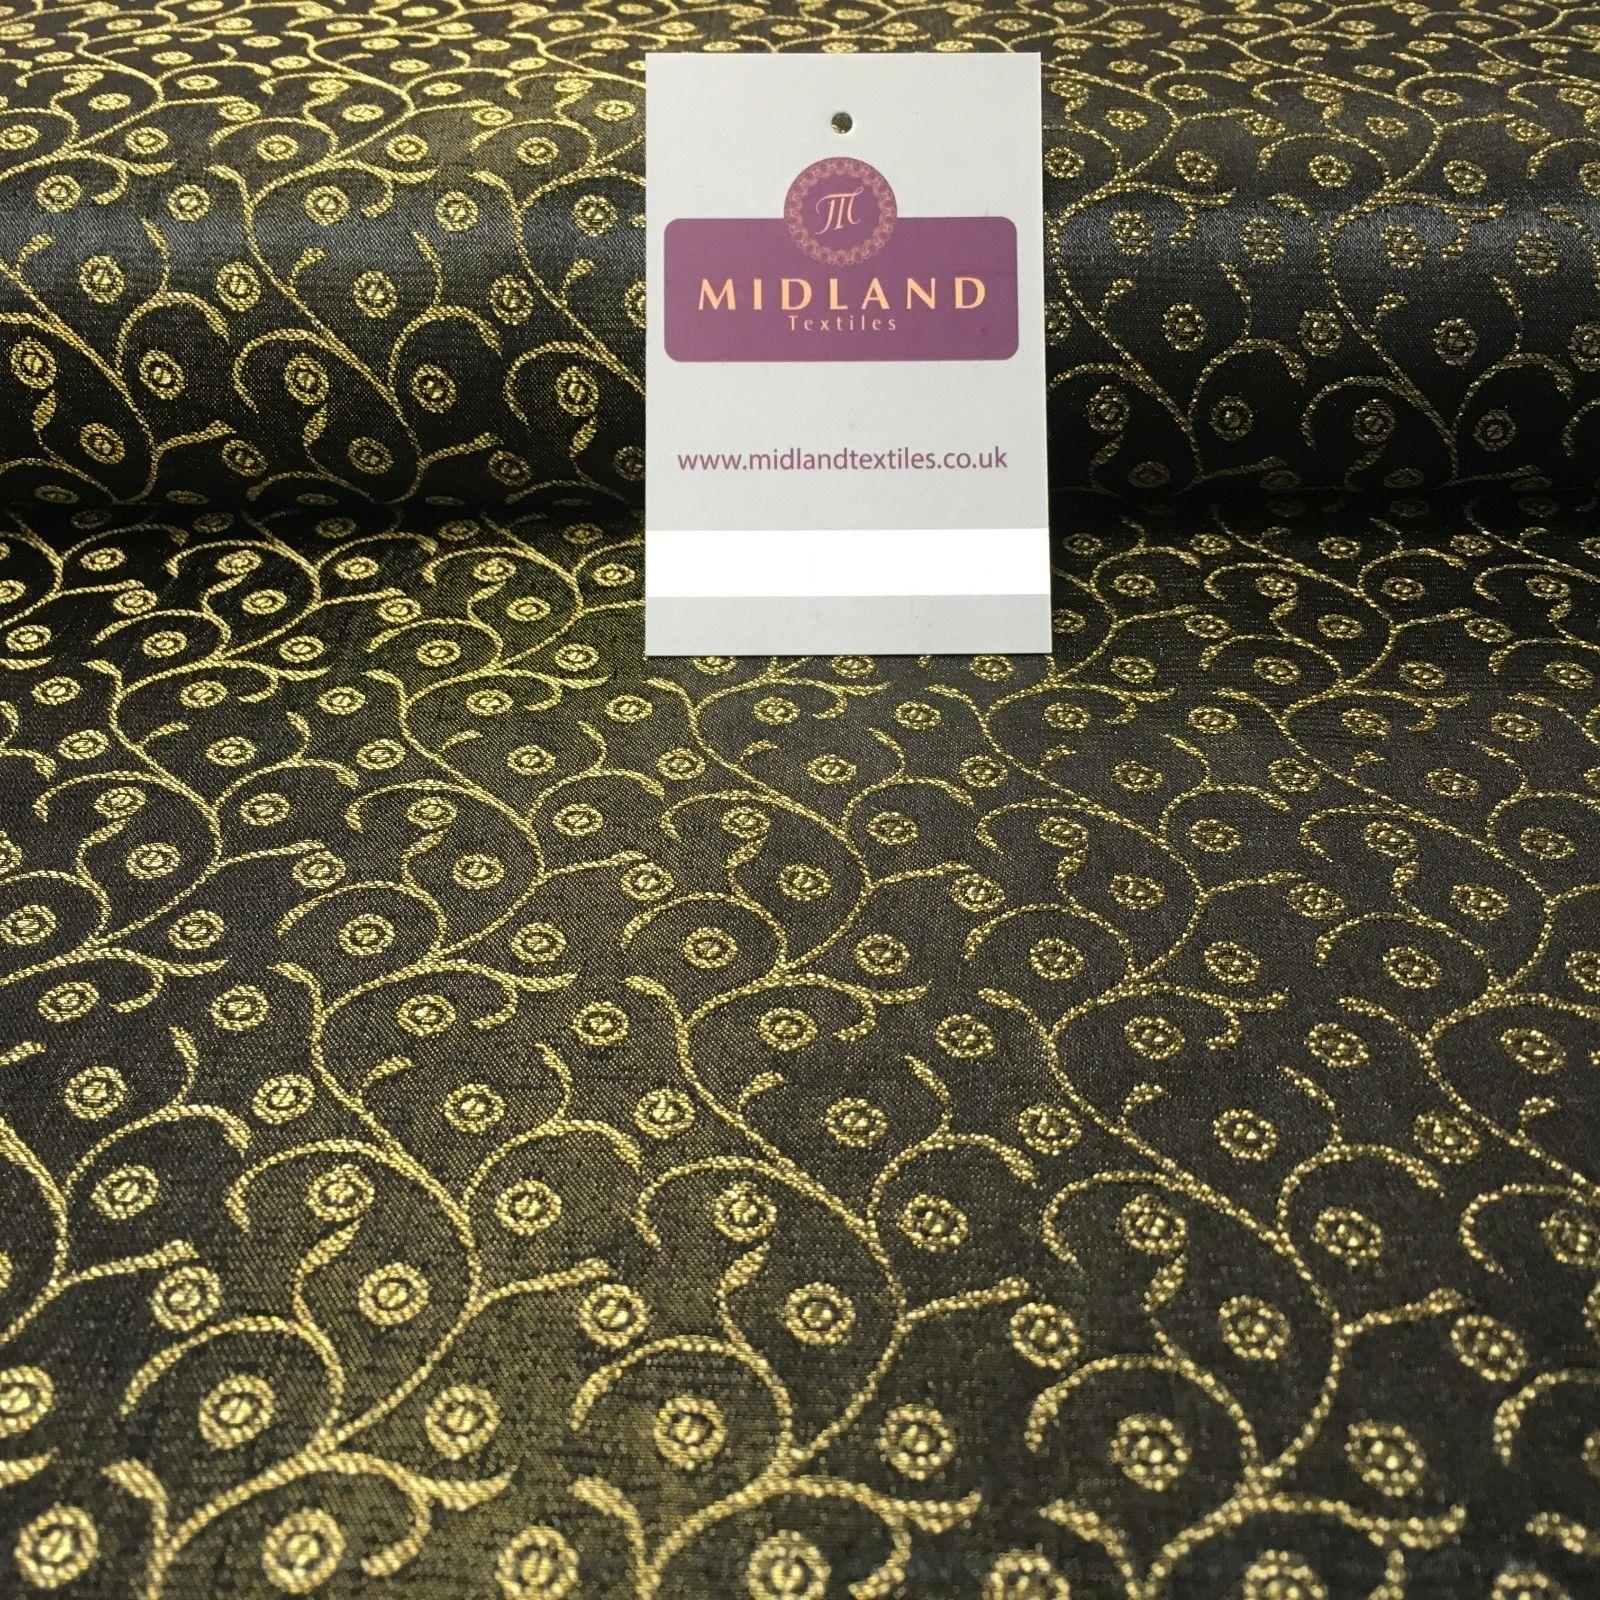 "Black Indian Banarsi Brocade faux silk wedding waistcoat fabric 44"" Wide M994"